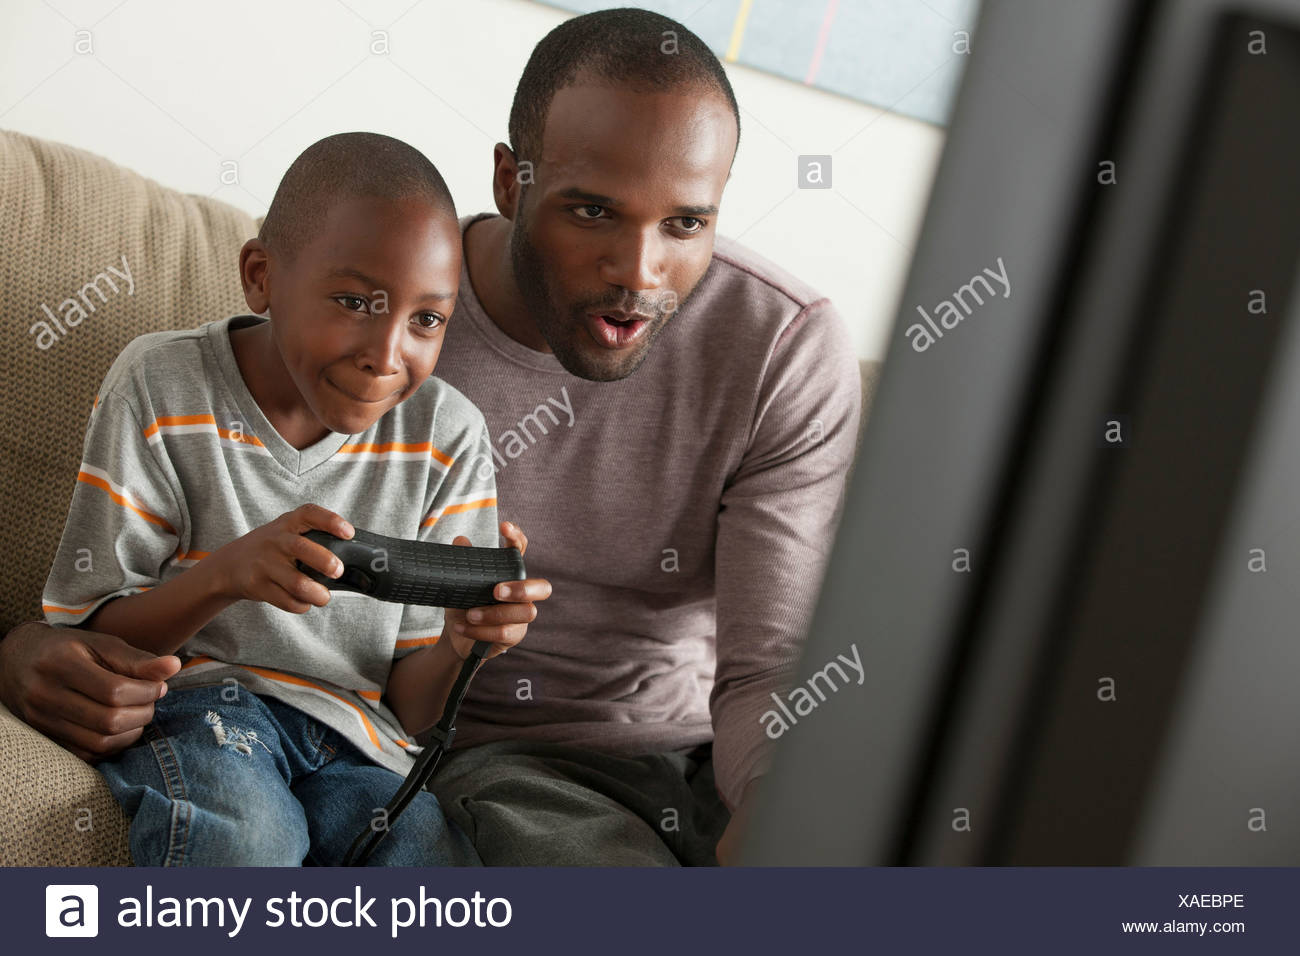 Father and son playing video game - Stock Image